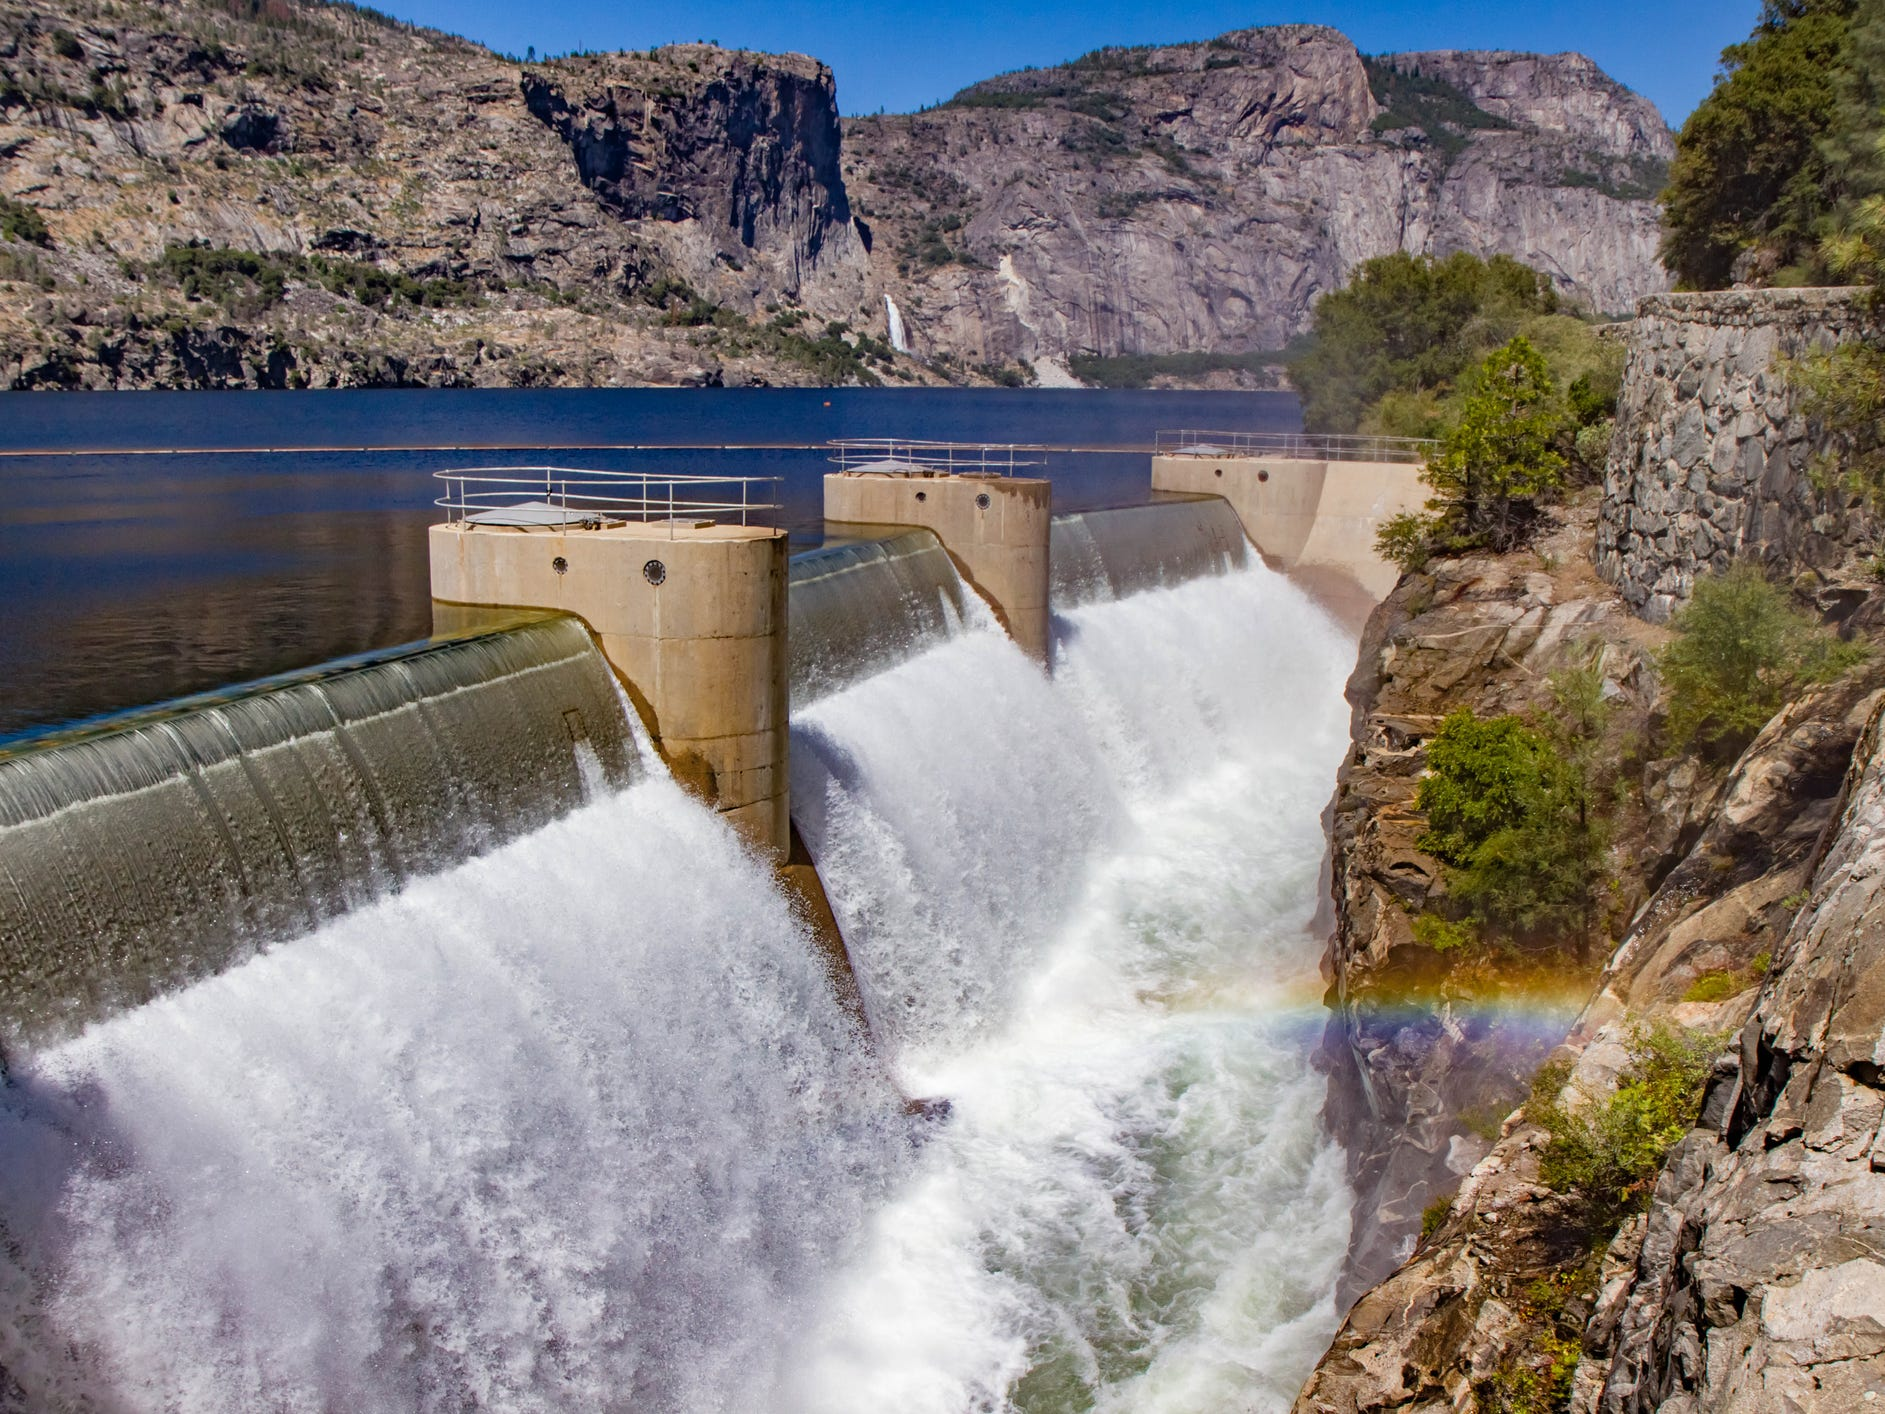 O'Shaughnessy Dam in California.